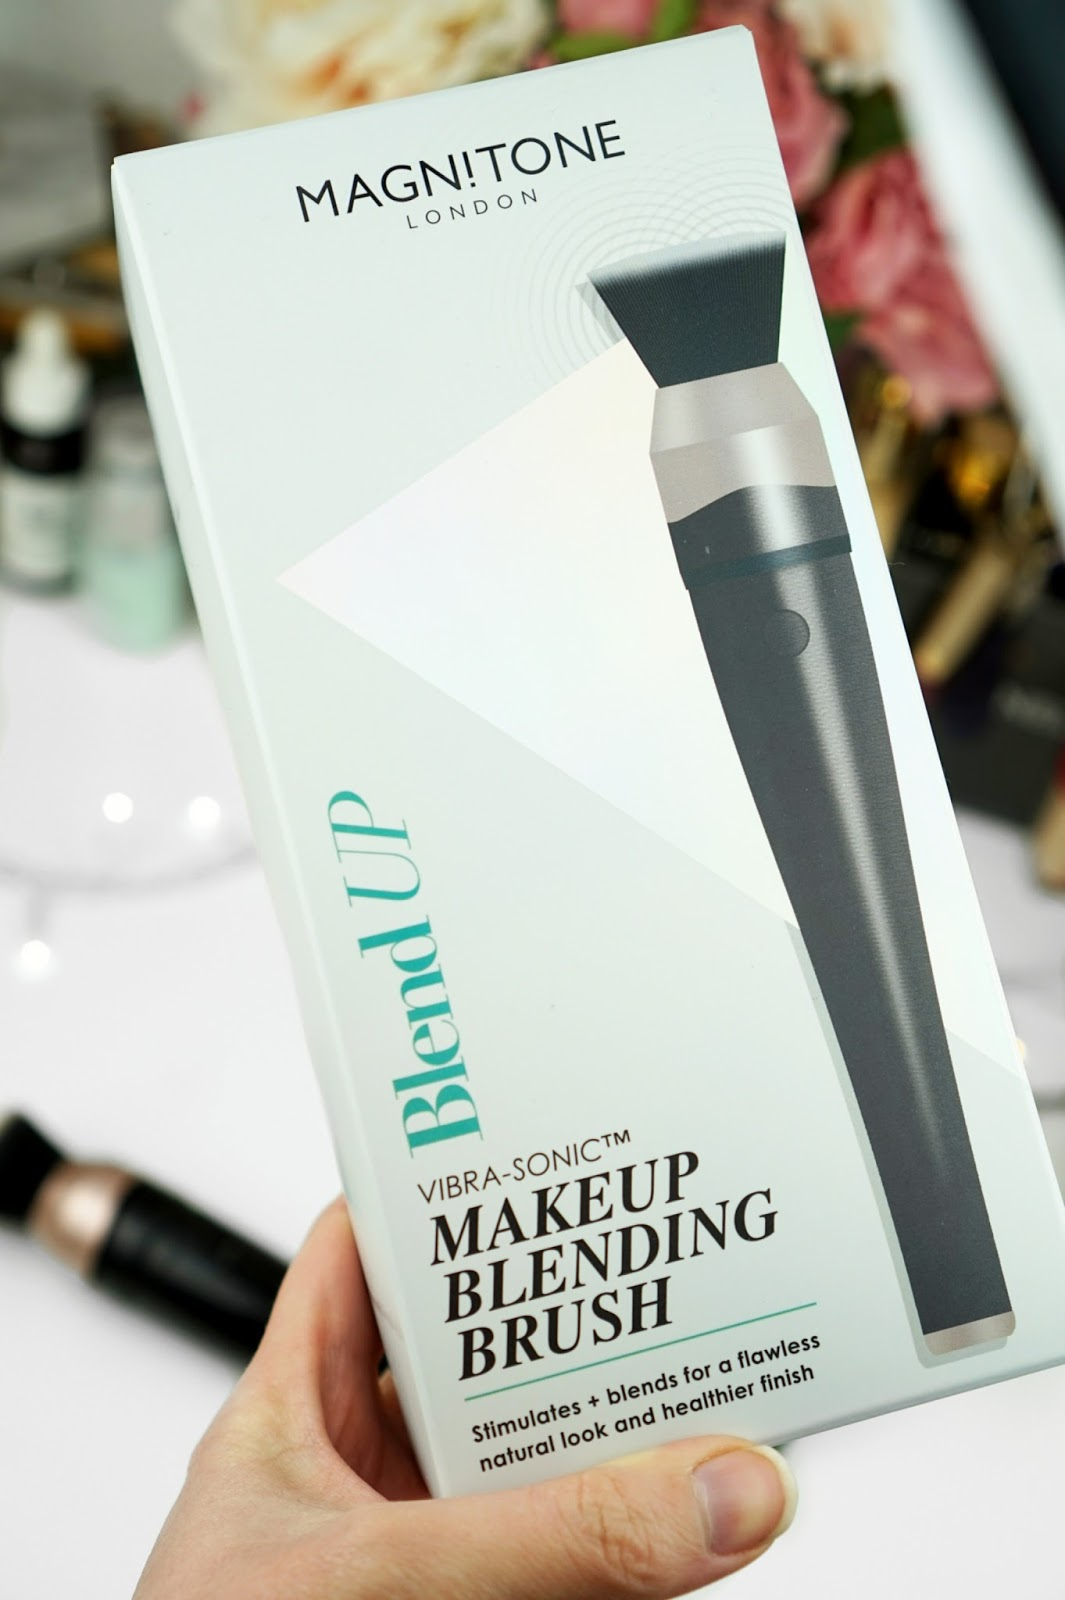 Magnitone_London_BlendUp_Makeup_Blending_Brush_Box